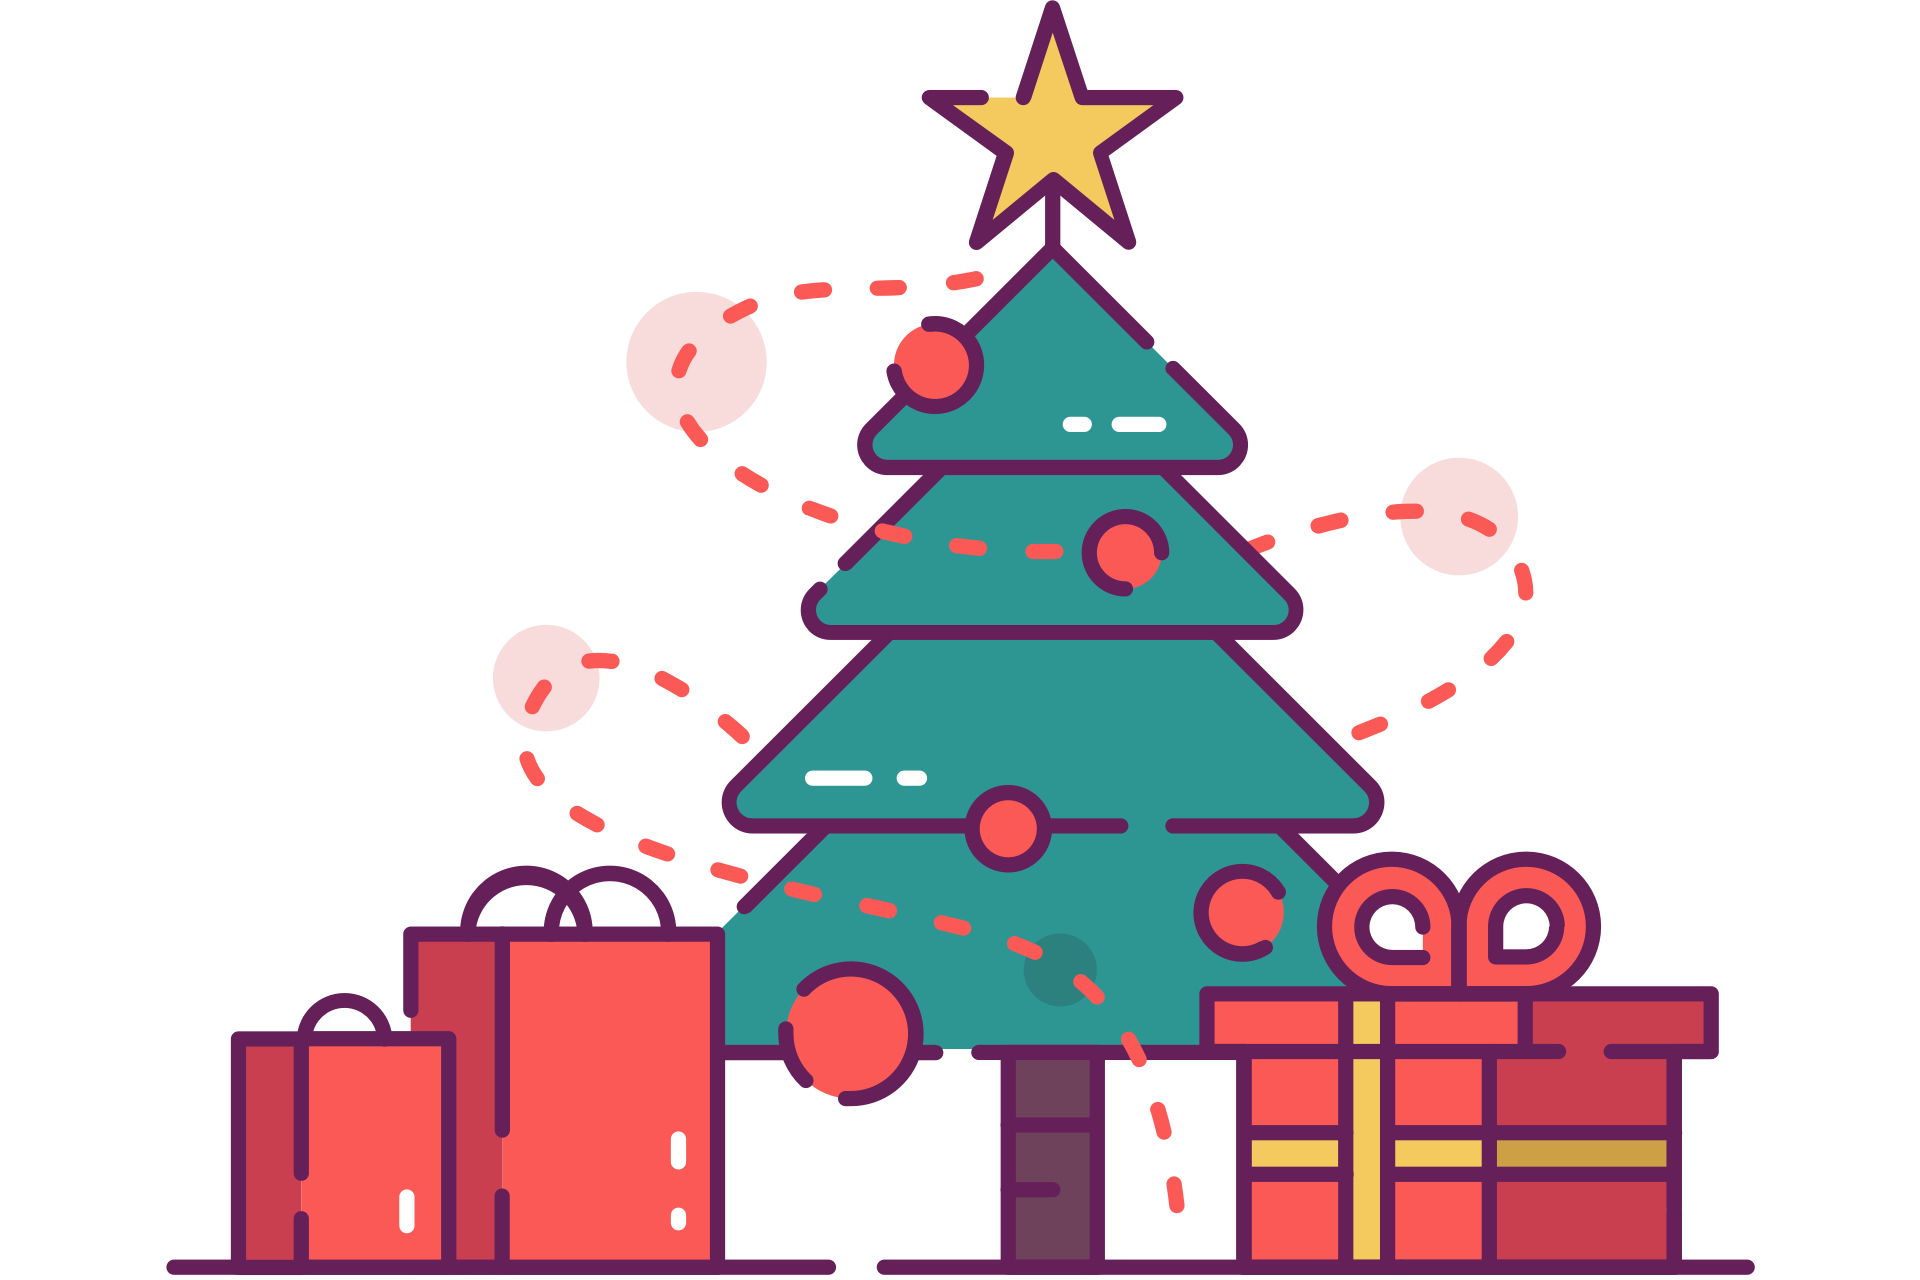 Christmas Tree with Presents Clip Art (Free) - Christmas HQ (1920 x 1280 Pixel)